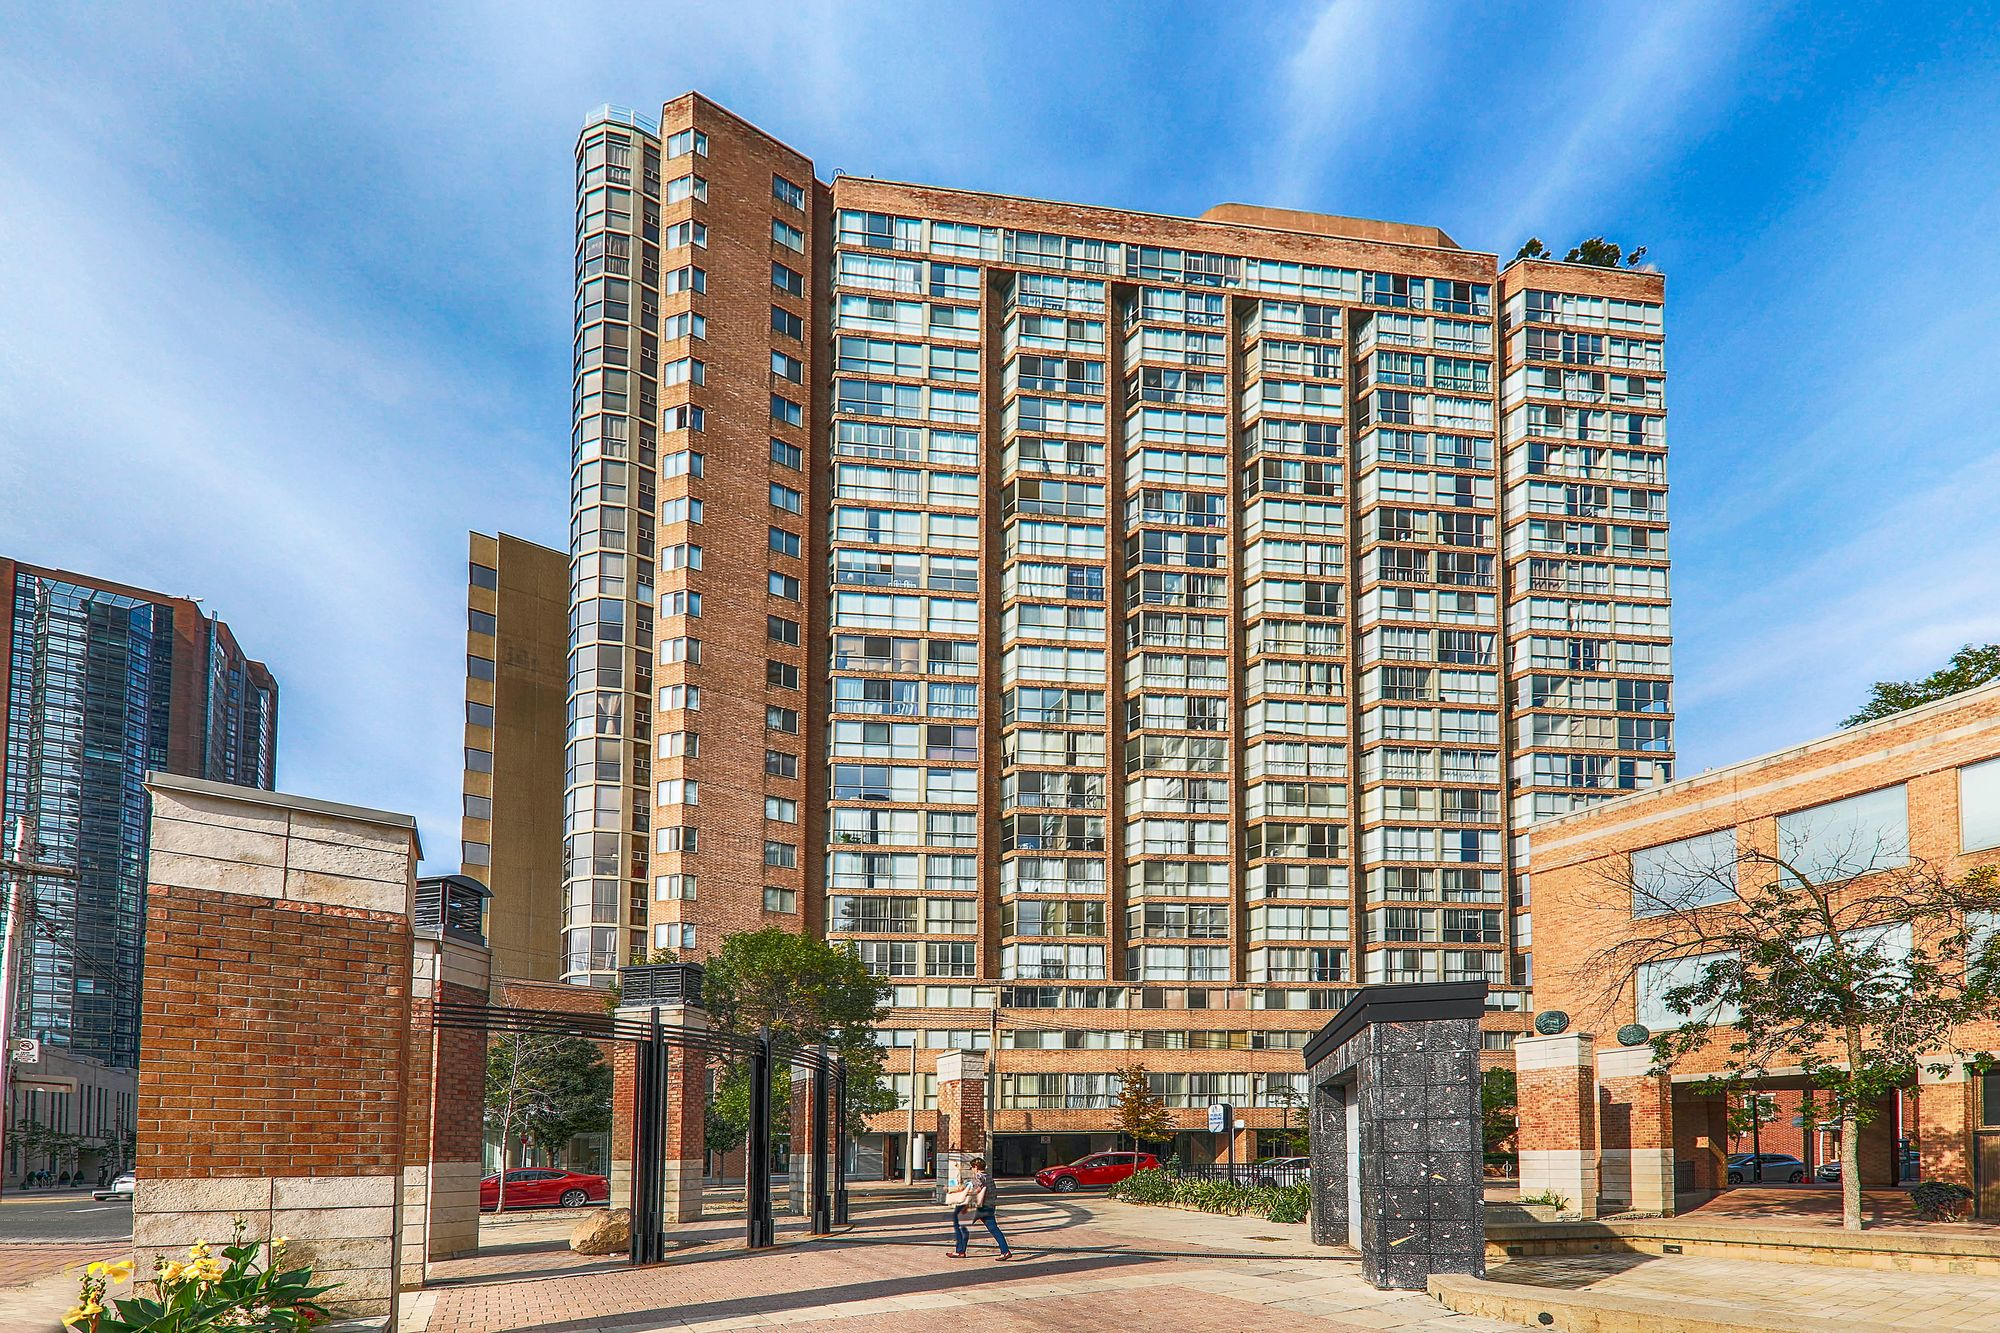 1055 Bay St. This condo at Polo Club I Condos is located in  Downtown, Toronto - image #2 of 6 by Strata.ca